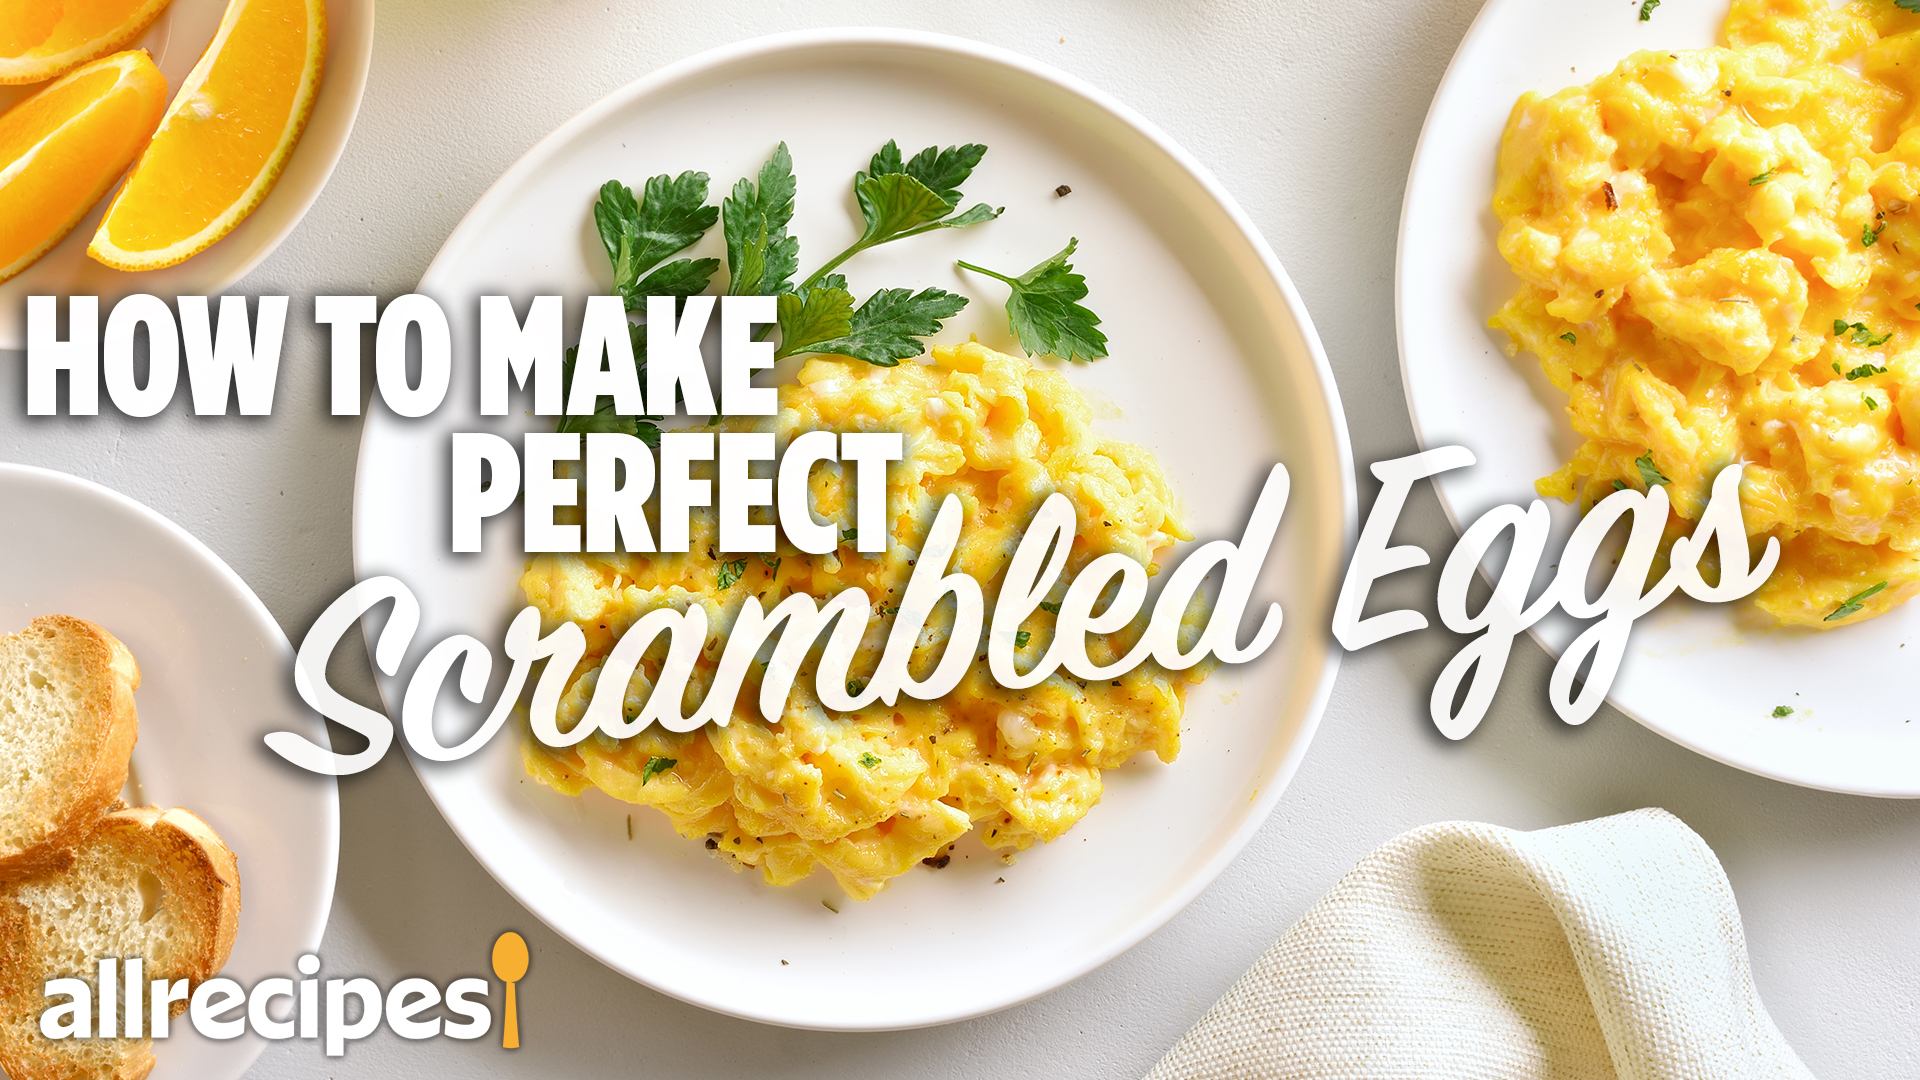 How To Make Perfect Scrambled Eggs Allrecipes